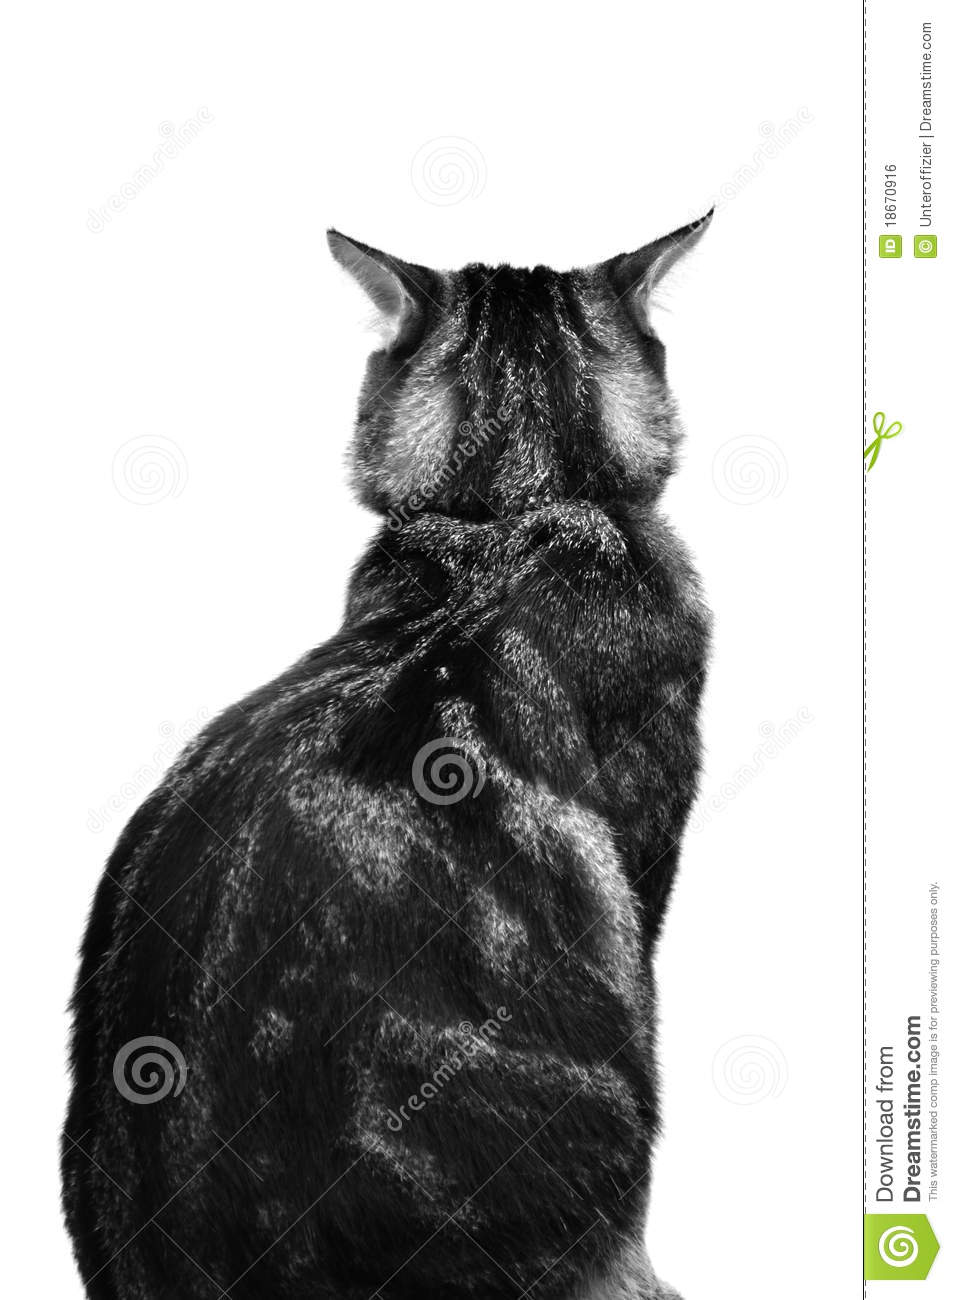 cat back view stock photo  image of isolated  white  view